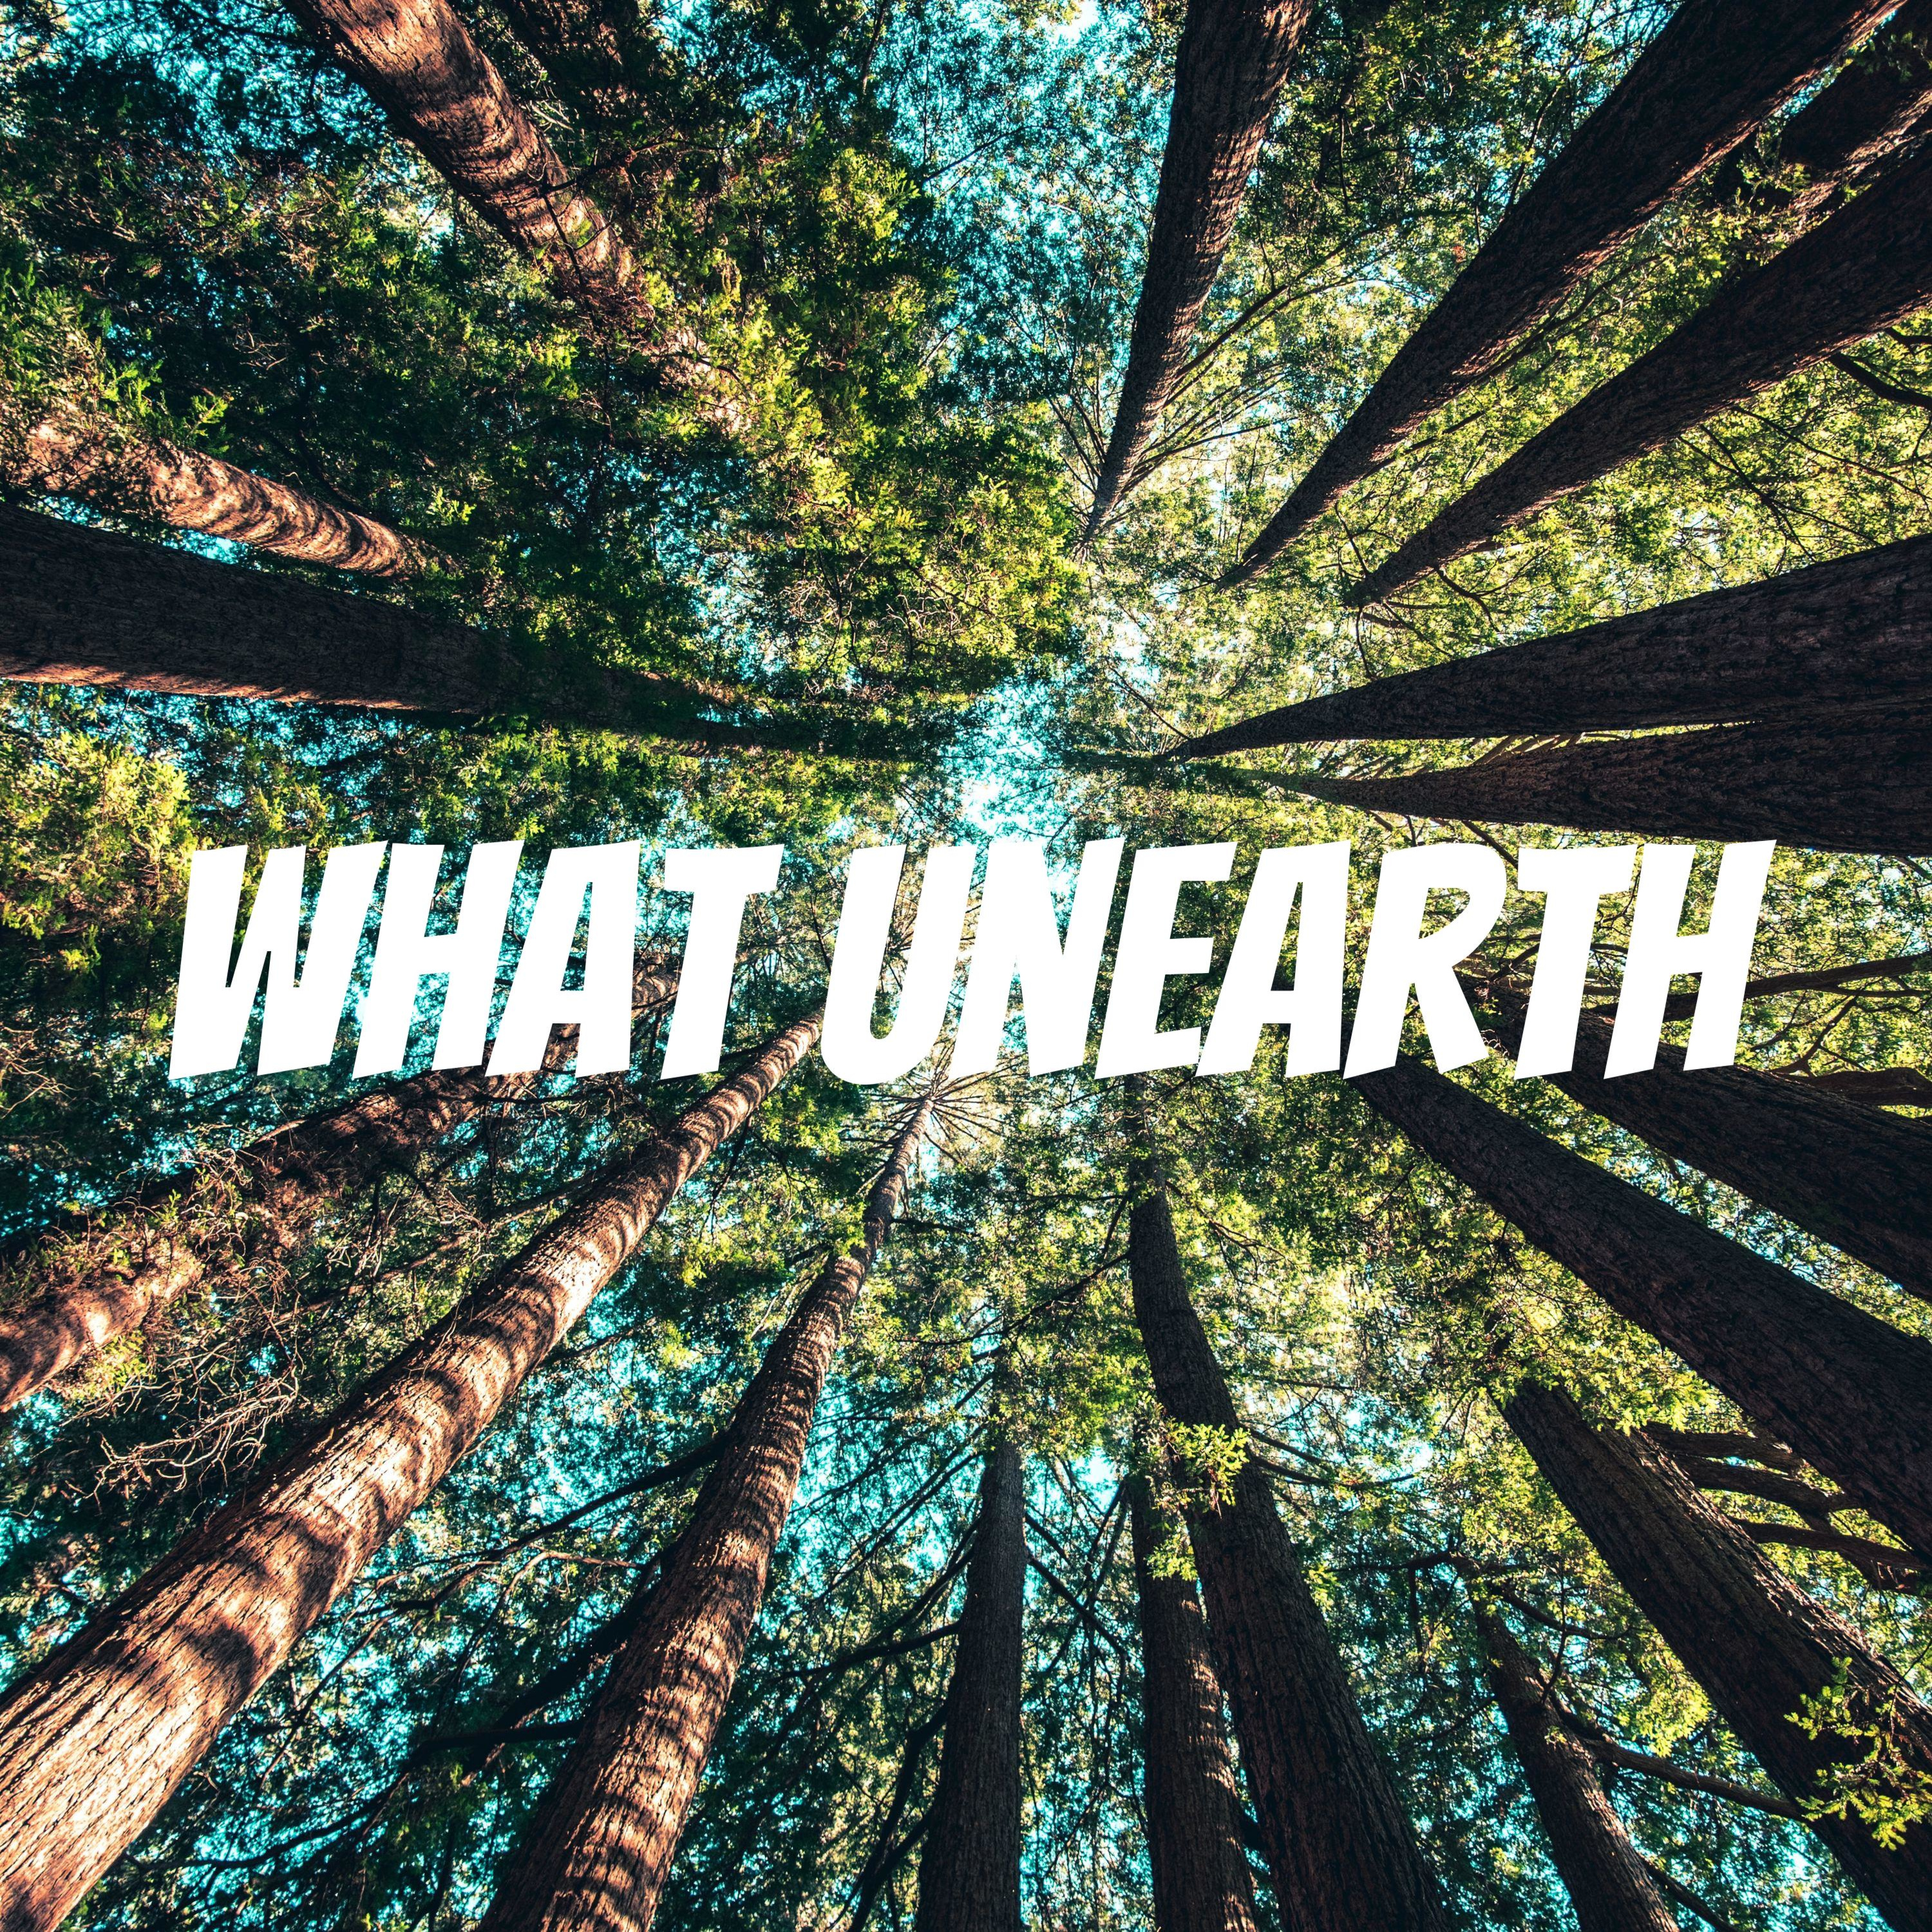 Short UnEarth 13: Circle of Solidarity - Greenpeace India's Farmer Relief Program